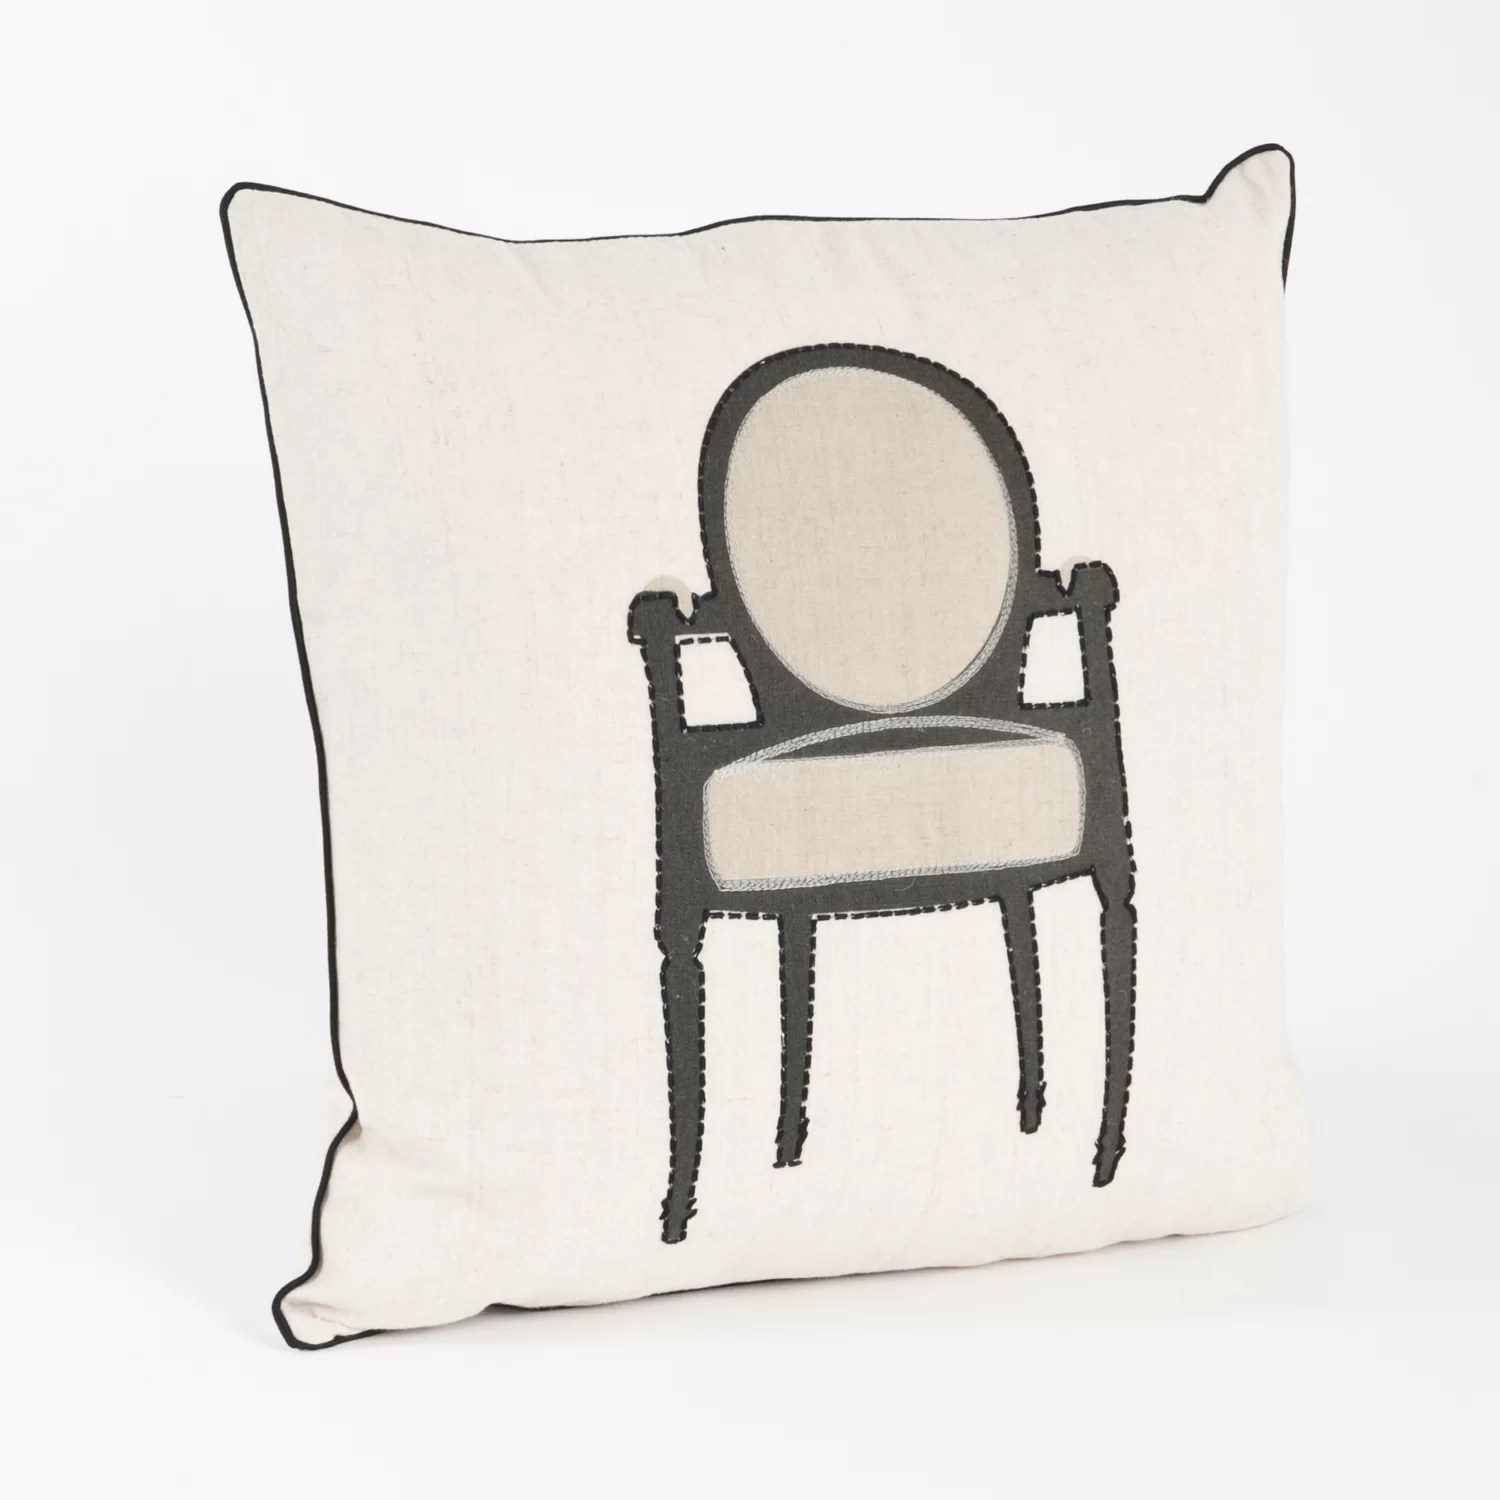 Petite Chaise Petite Chaise Chair Design Throw Pillow